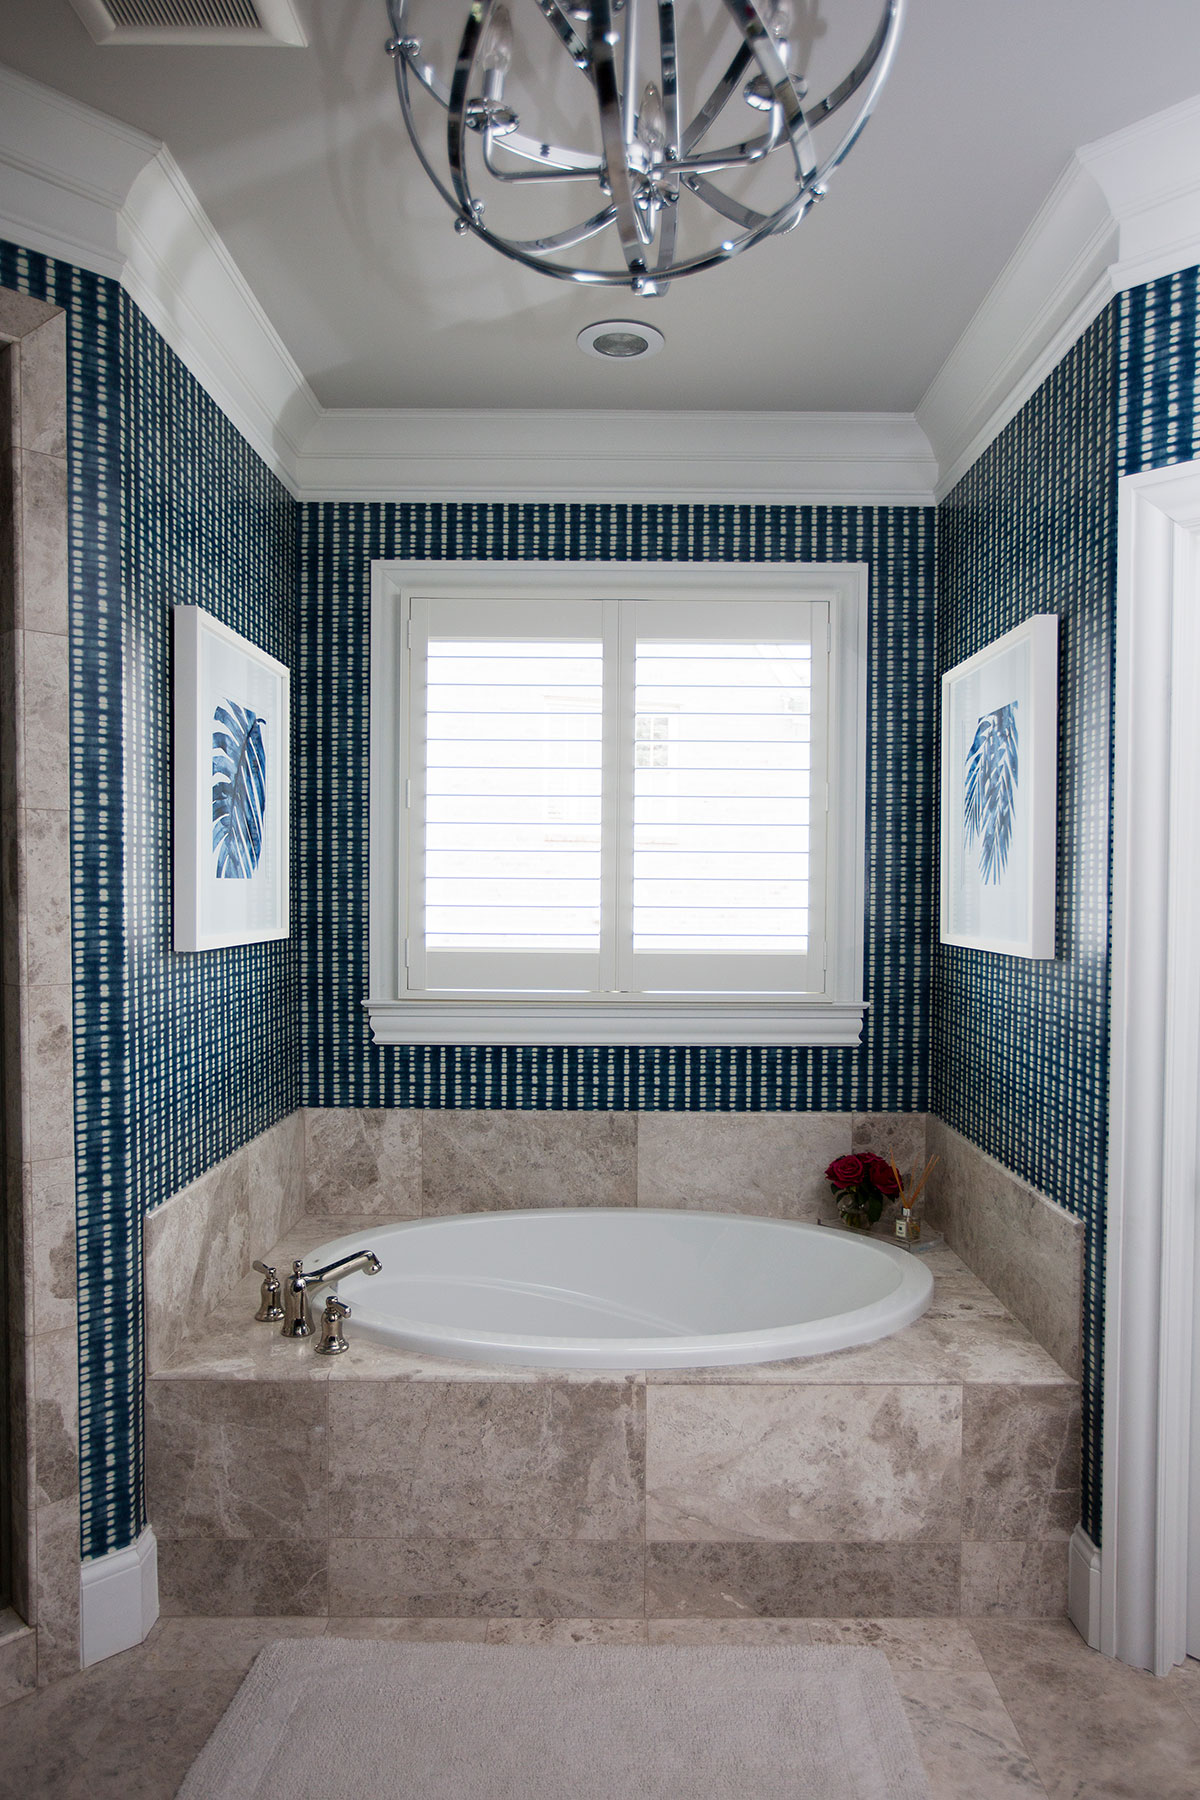 Built in tub in transitional master bathroom with blue and white wallpaper